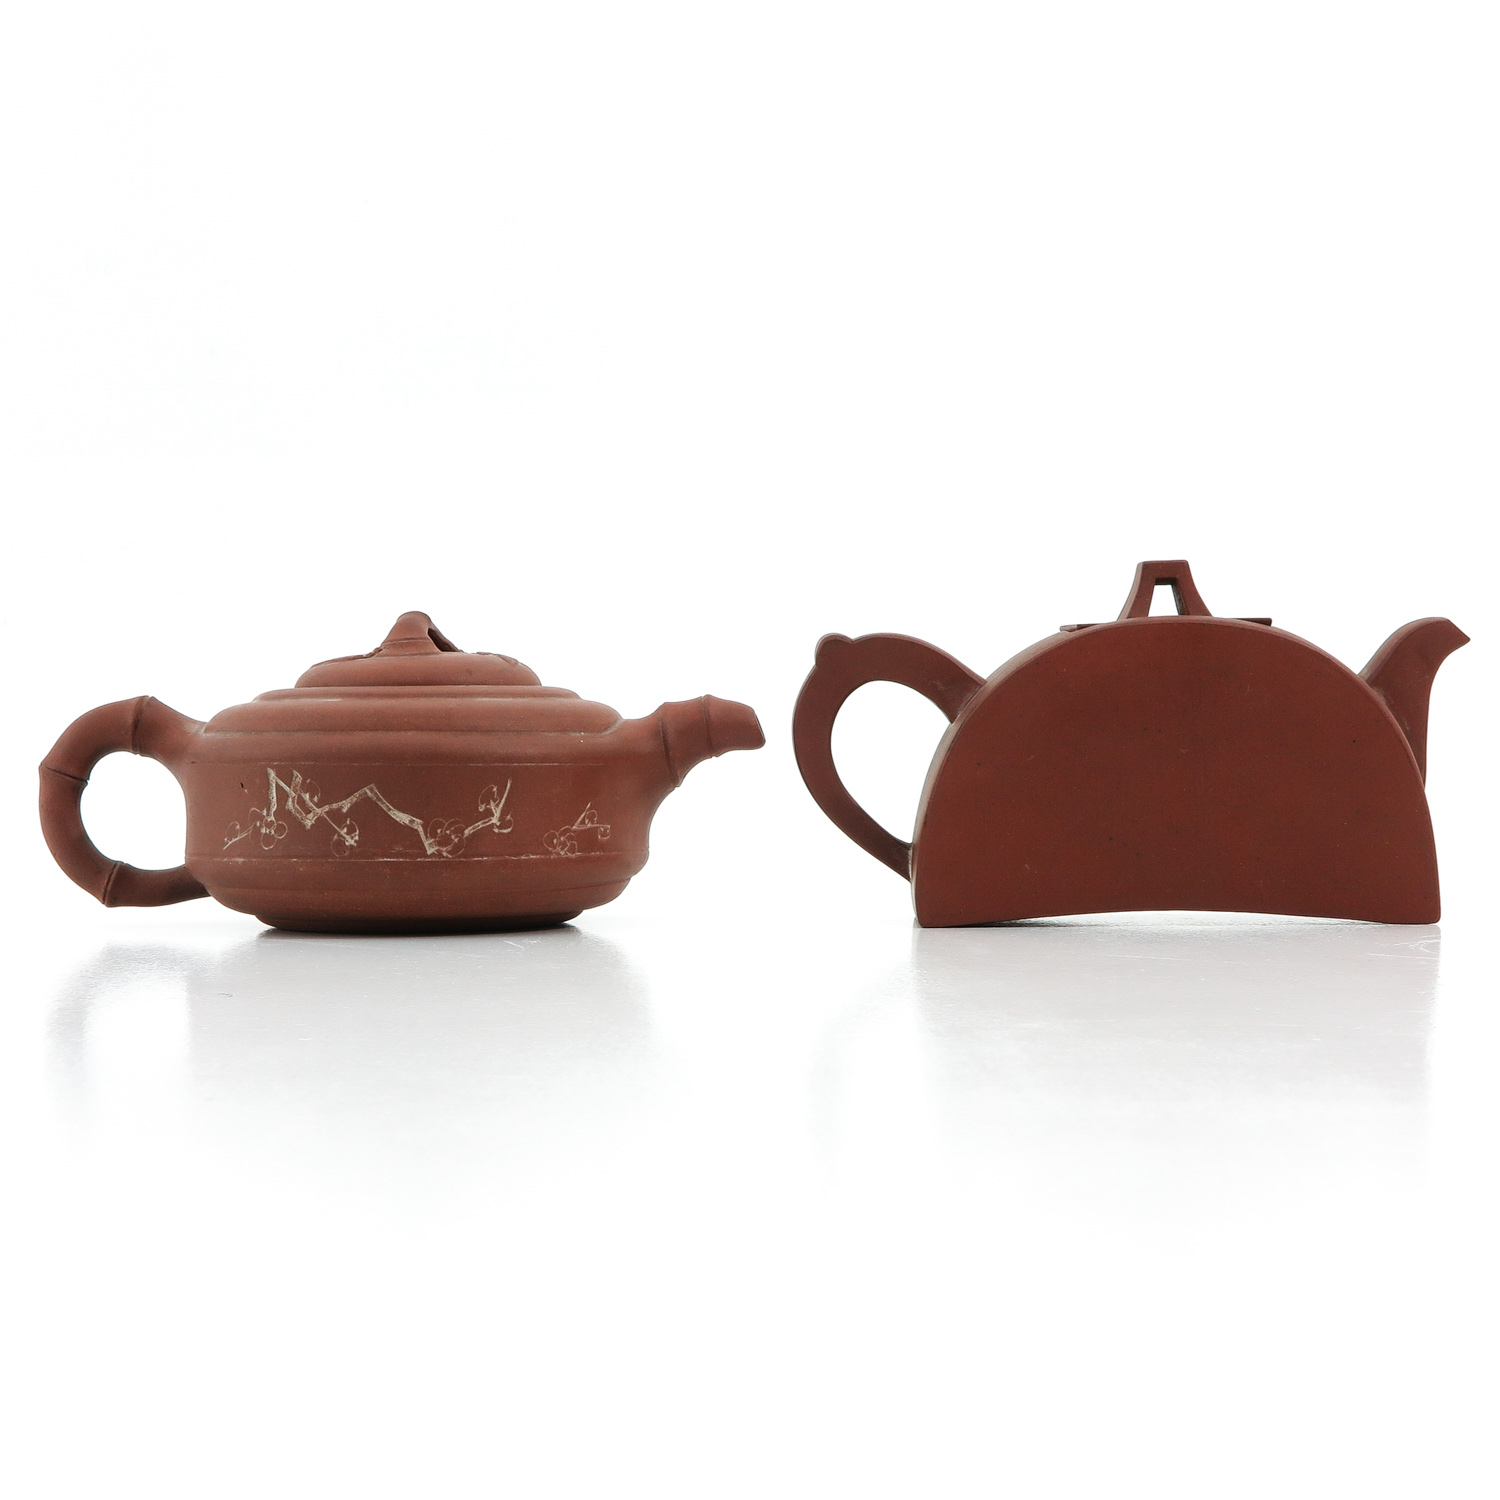 A Lot of 2 Yixing Teapots - Image 3 of 9